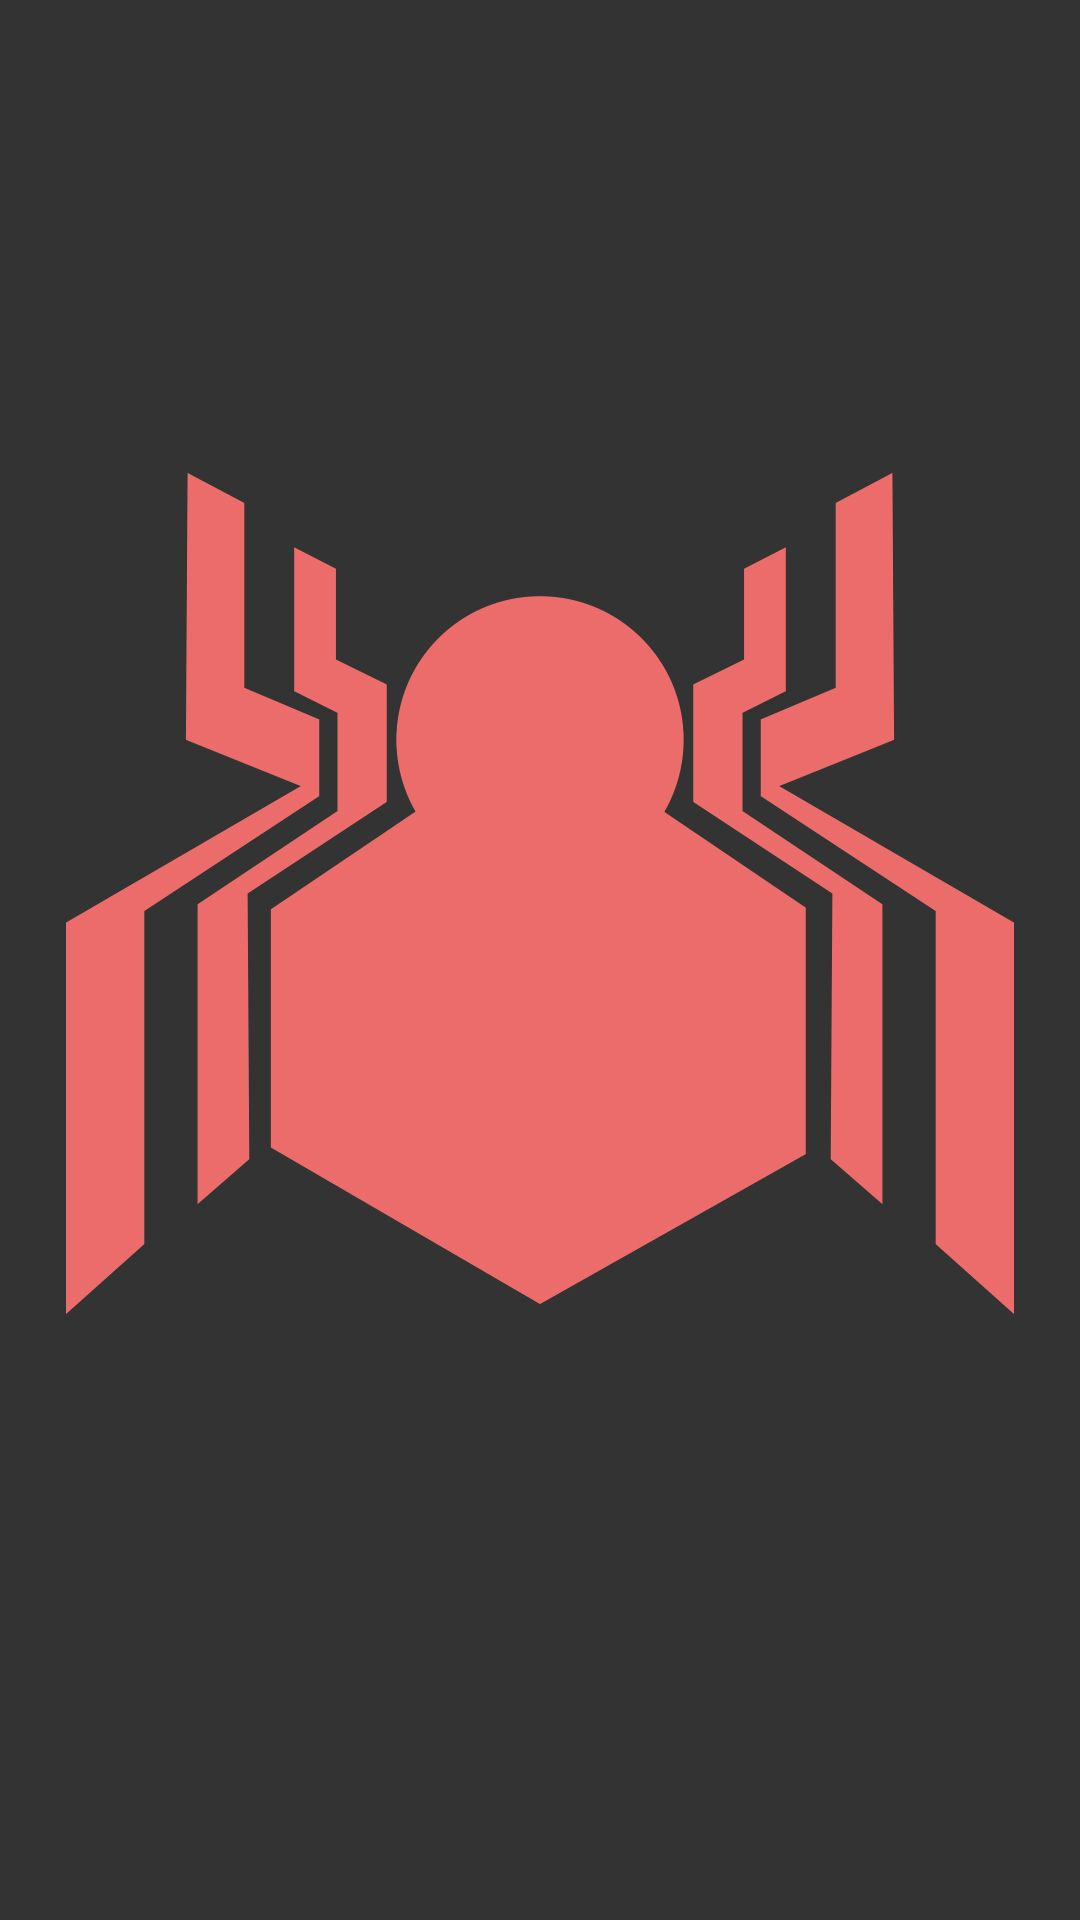 Star Wars Homecoming 1080 X 1920 Wallpapers Available For Free